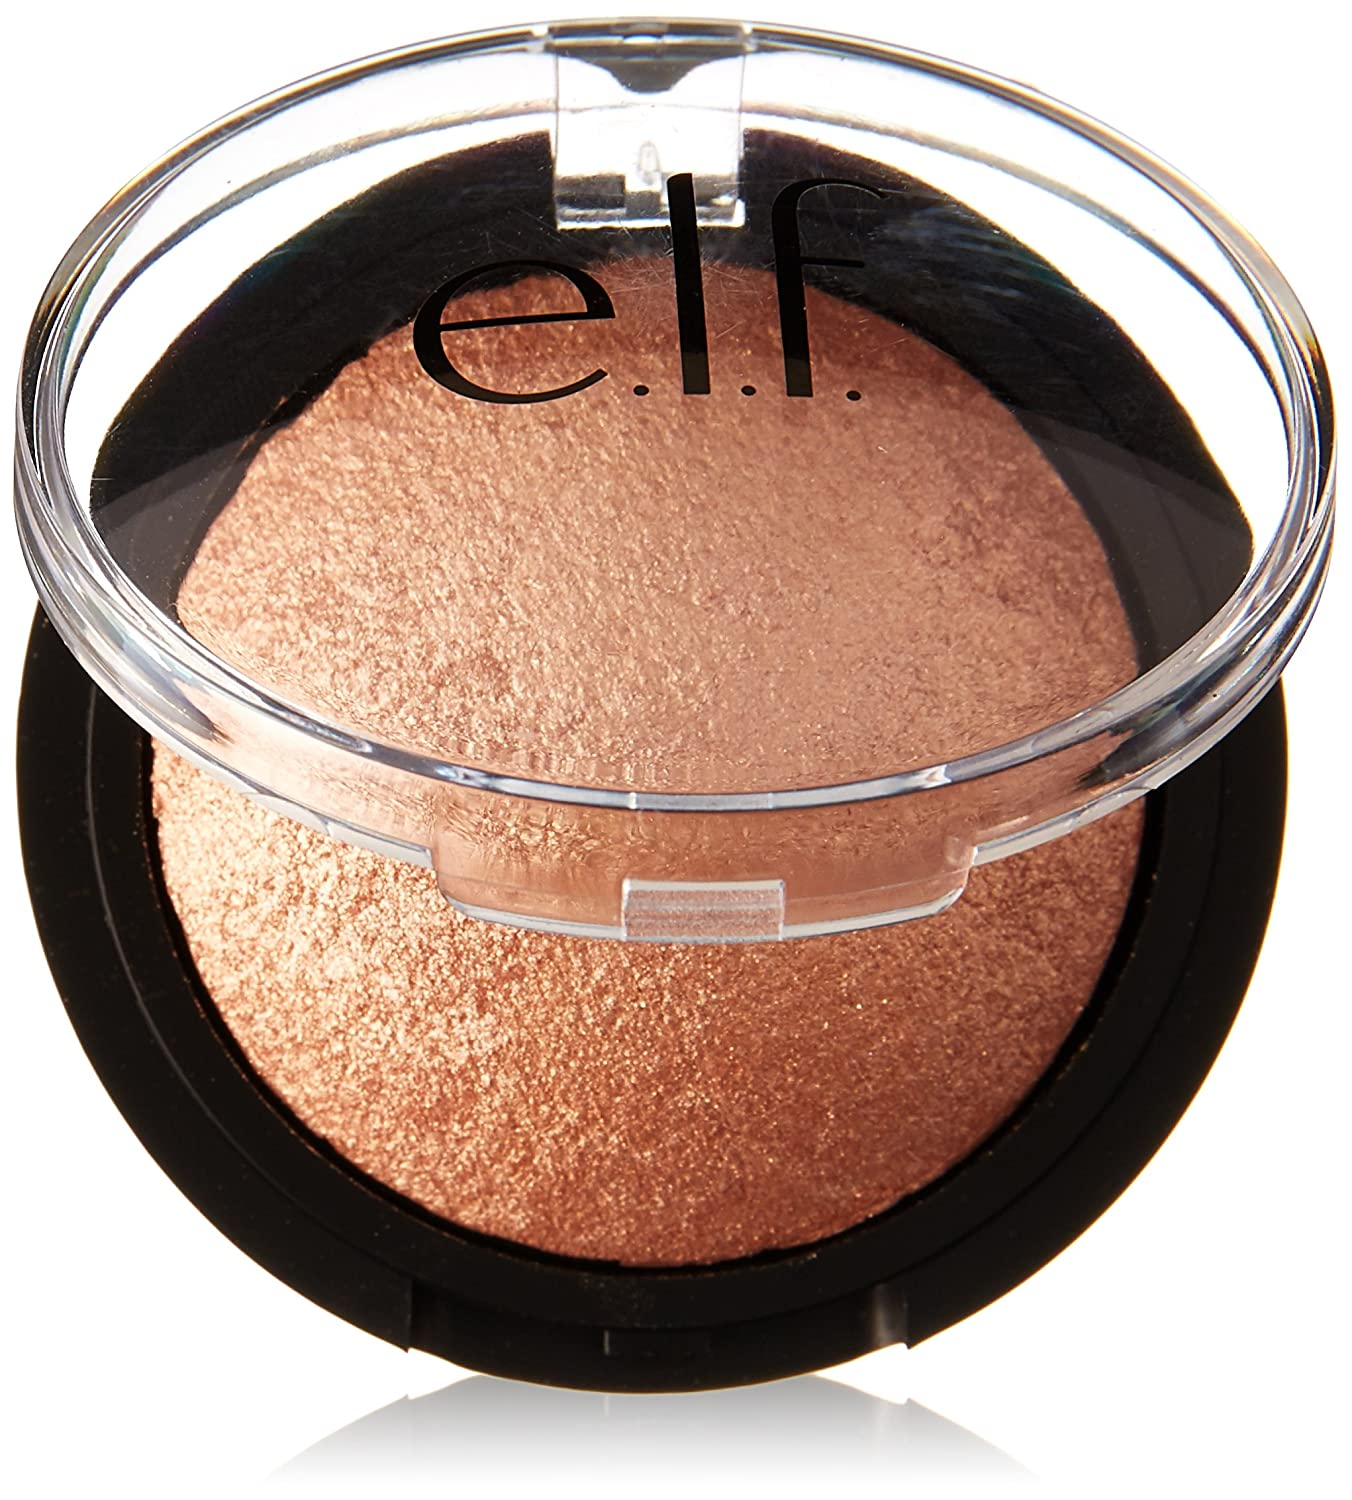 e.l.f. Studio Baked Highlighter 83706 Blush Gems NET WT.0.17 OZ (5g) by e.l.f. e.l.f. Cosmetics